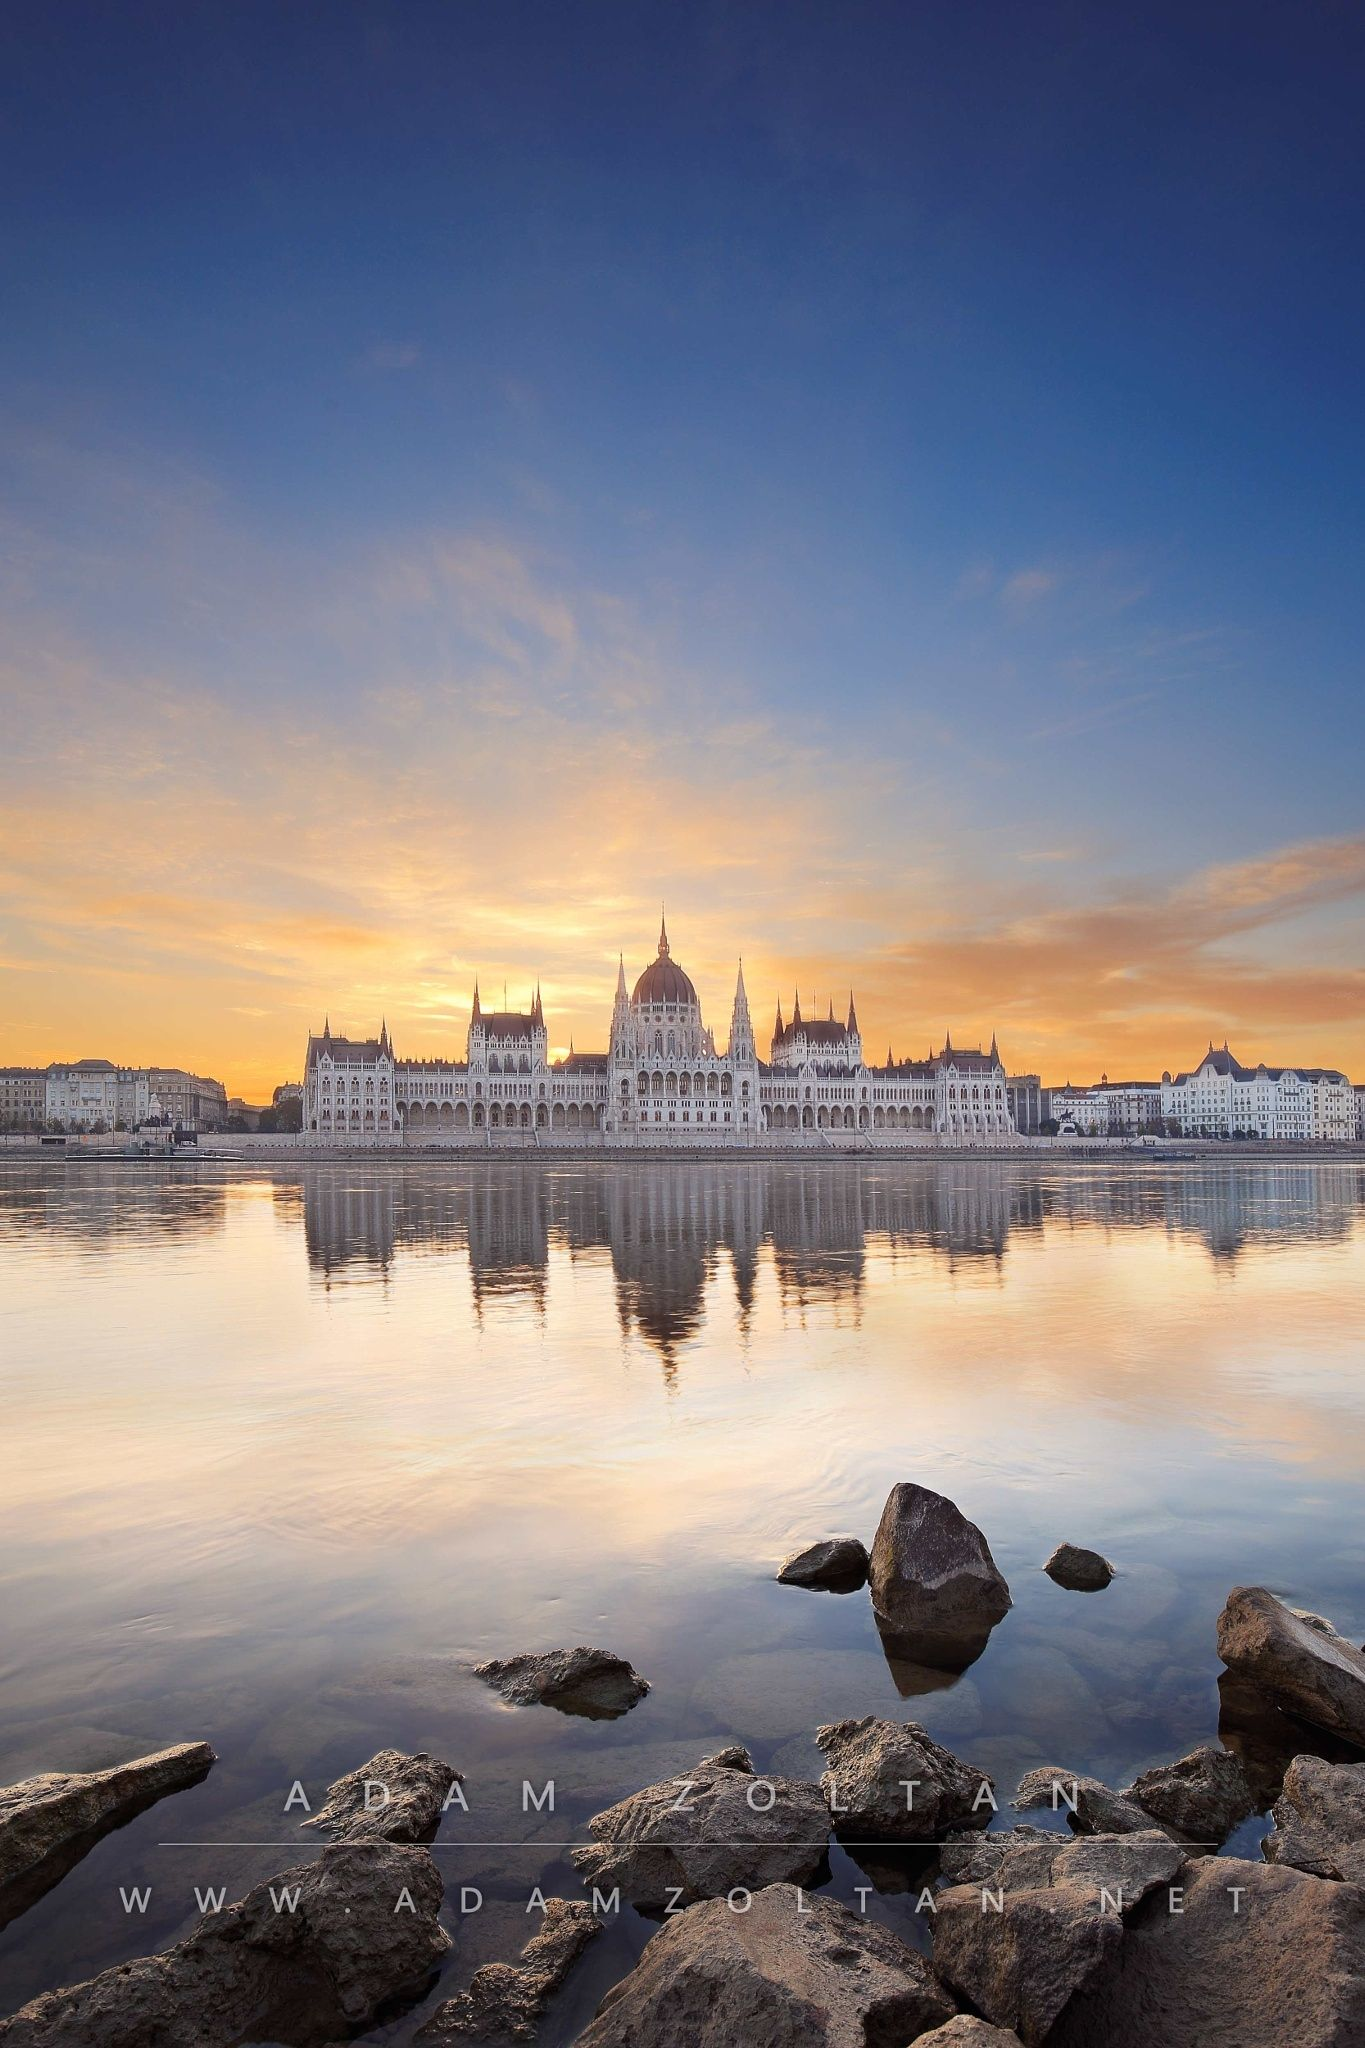 Budapest, Hungary - The Hungarian Parliament building in Budapest, Hungary at sunrise.  All rights reserved - Copyright © Adam Zoltan  http://adamzoltan.net